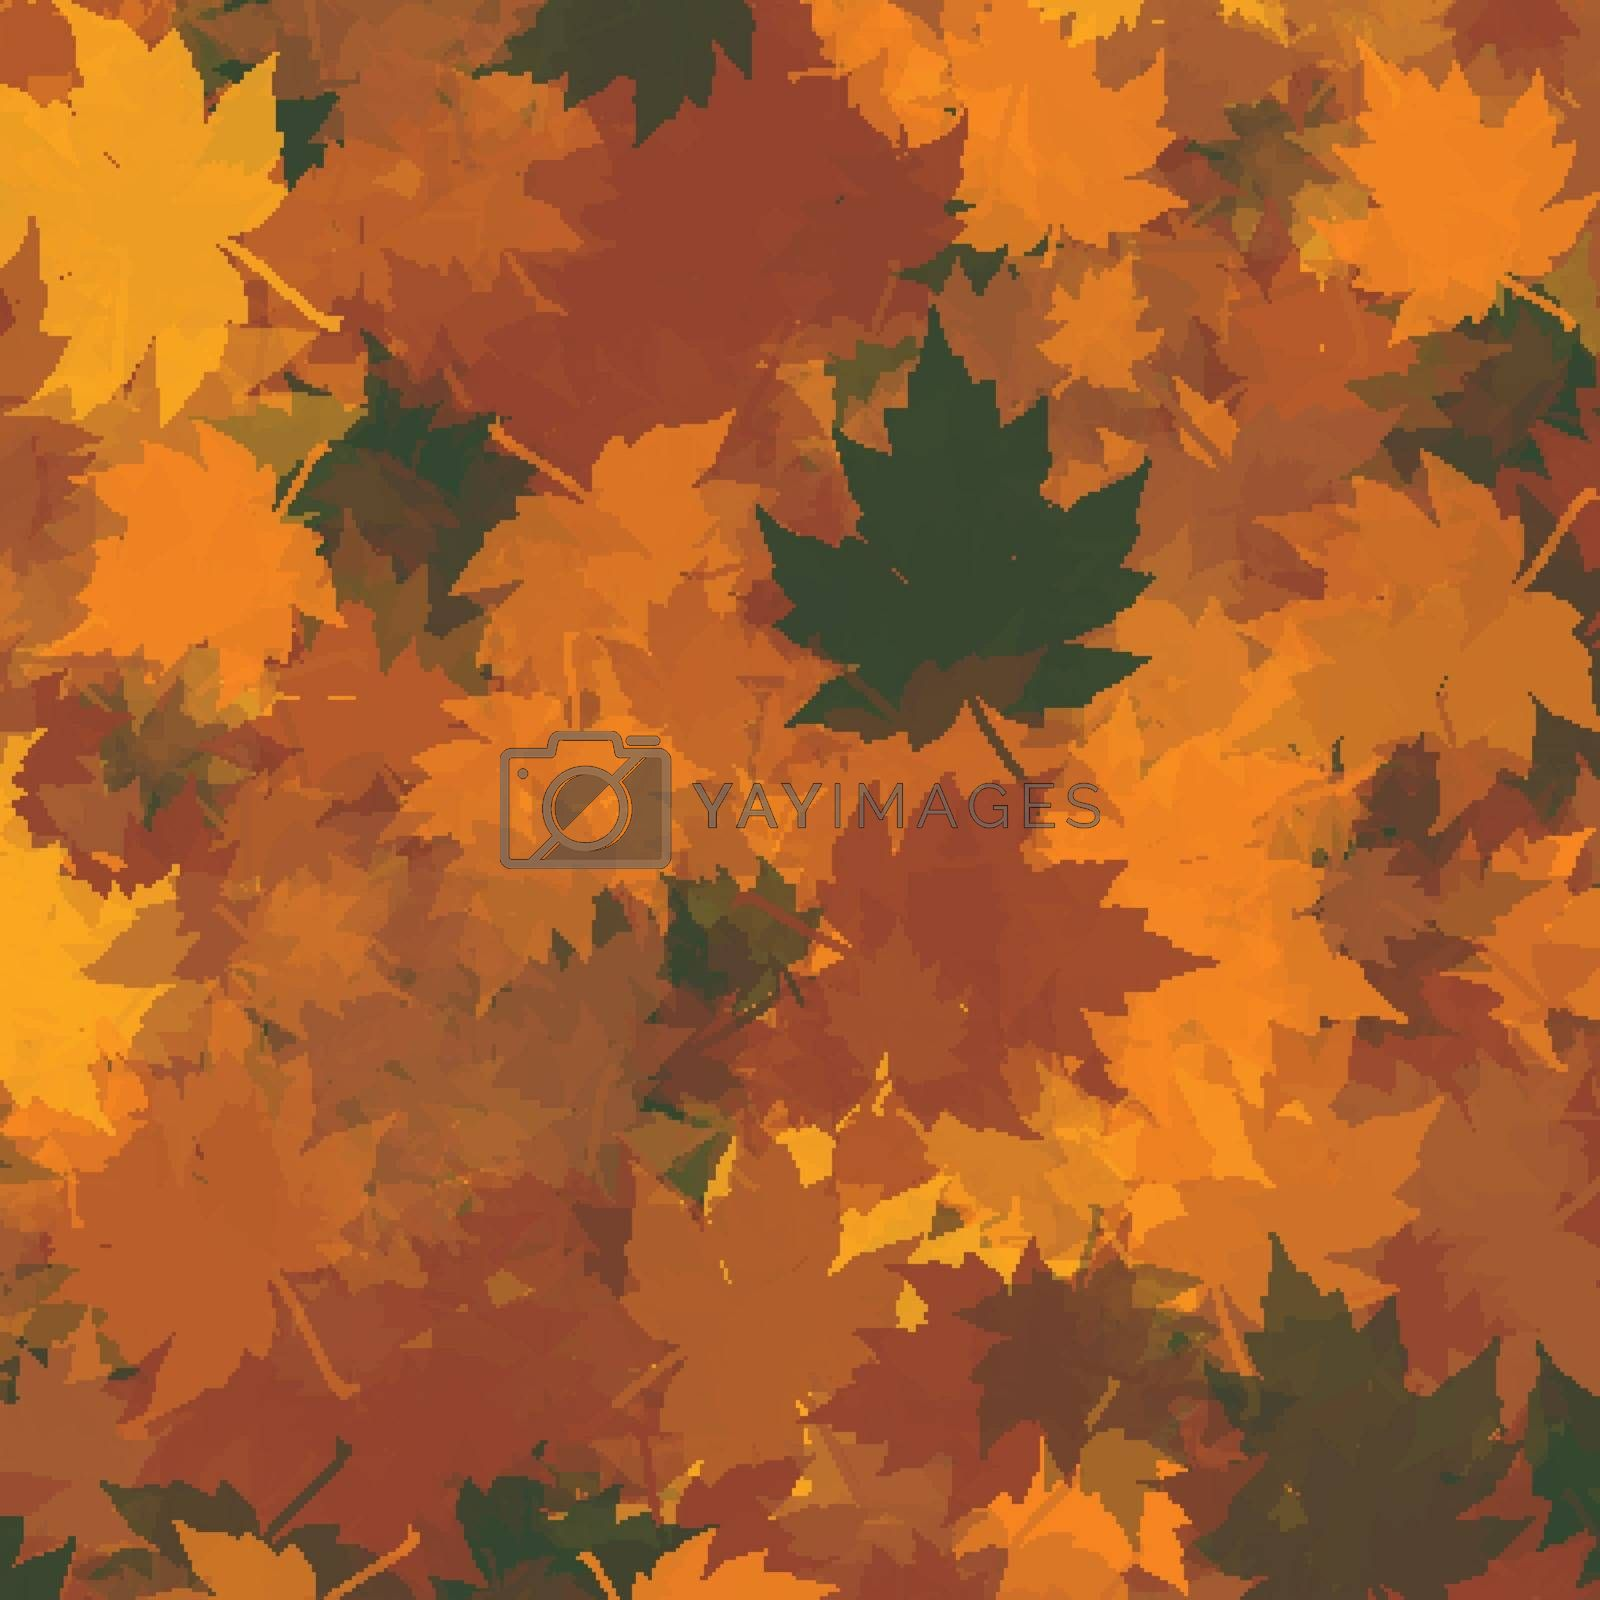 Red, Orange and Green Autumn Maple Leaves Vector Background